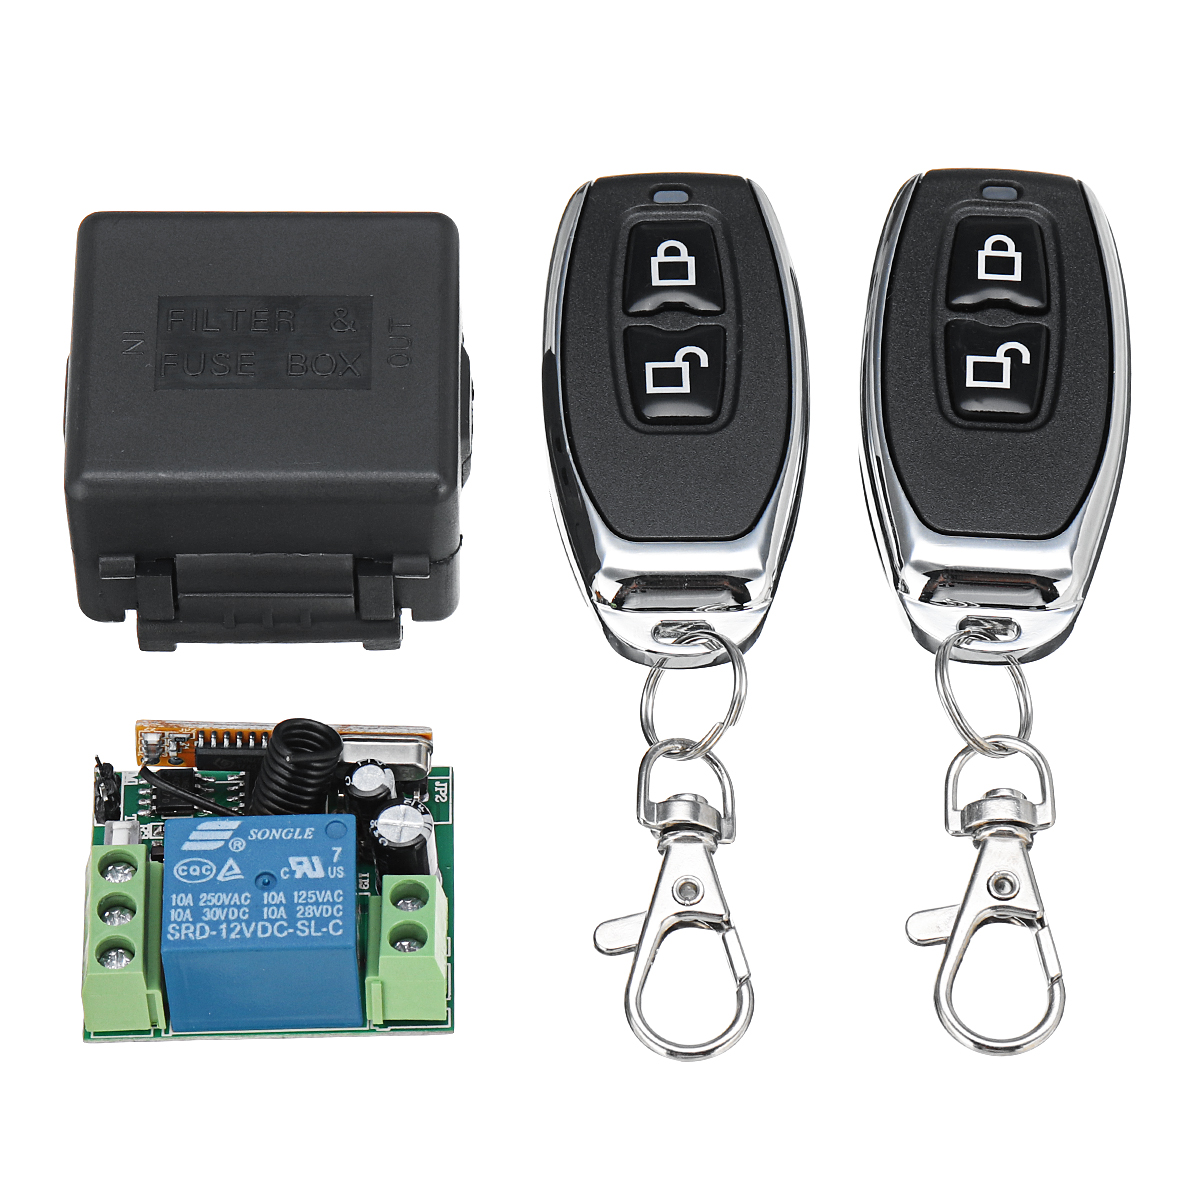 Relay For Sale Ioffer 1pcs 12v Dc Delay Turn On Off Switch Module External Trigger Time Adj 1319 Last Purchased 1 Day 433mhz Dc12v 1ch Wireless Remote Control R